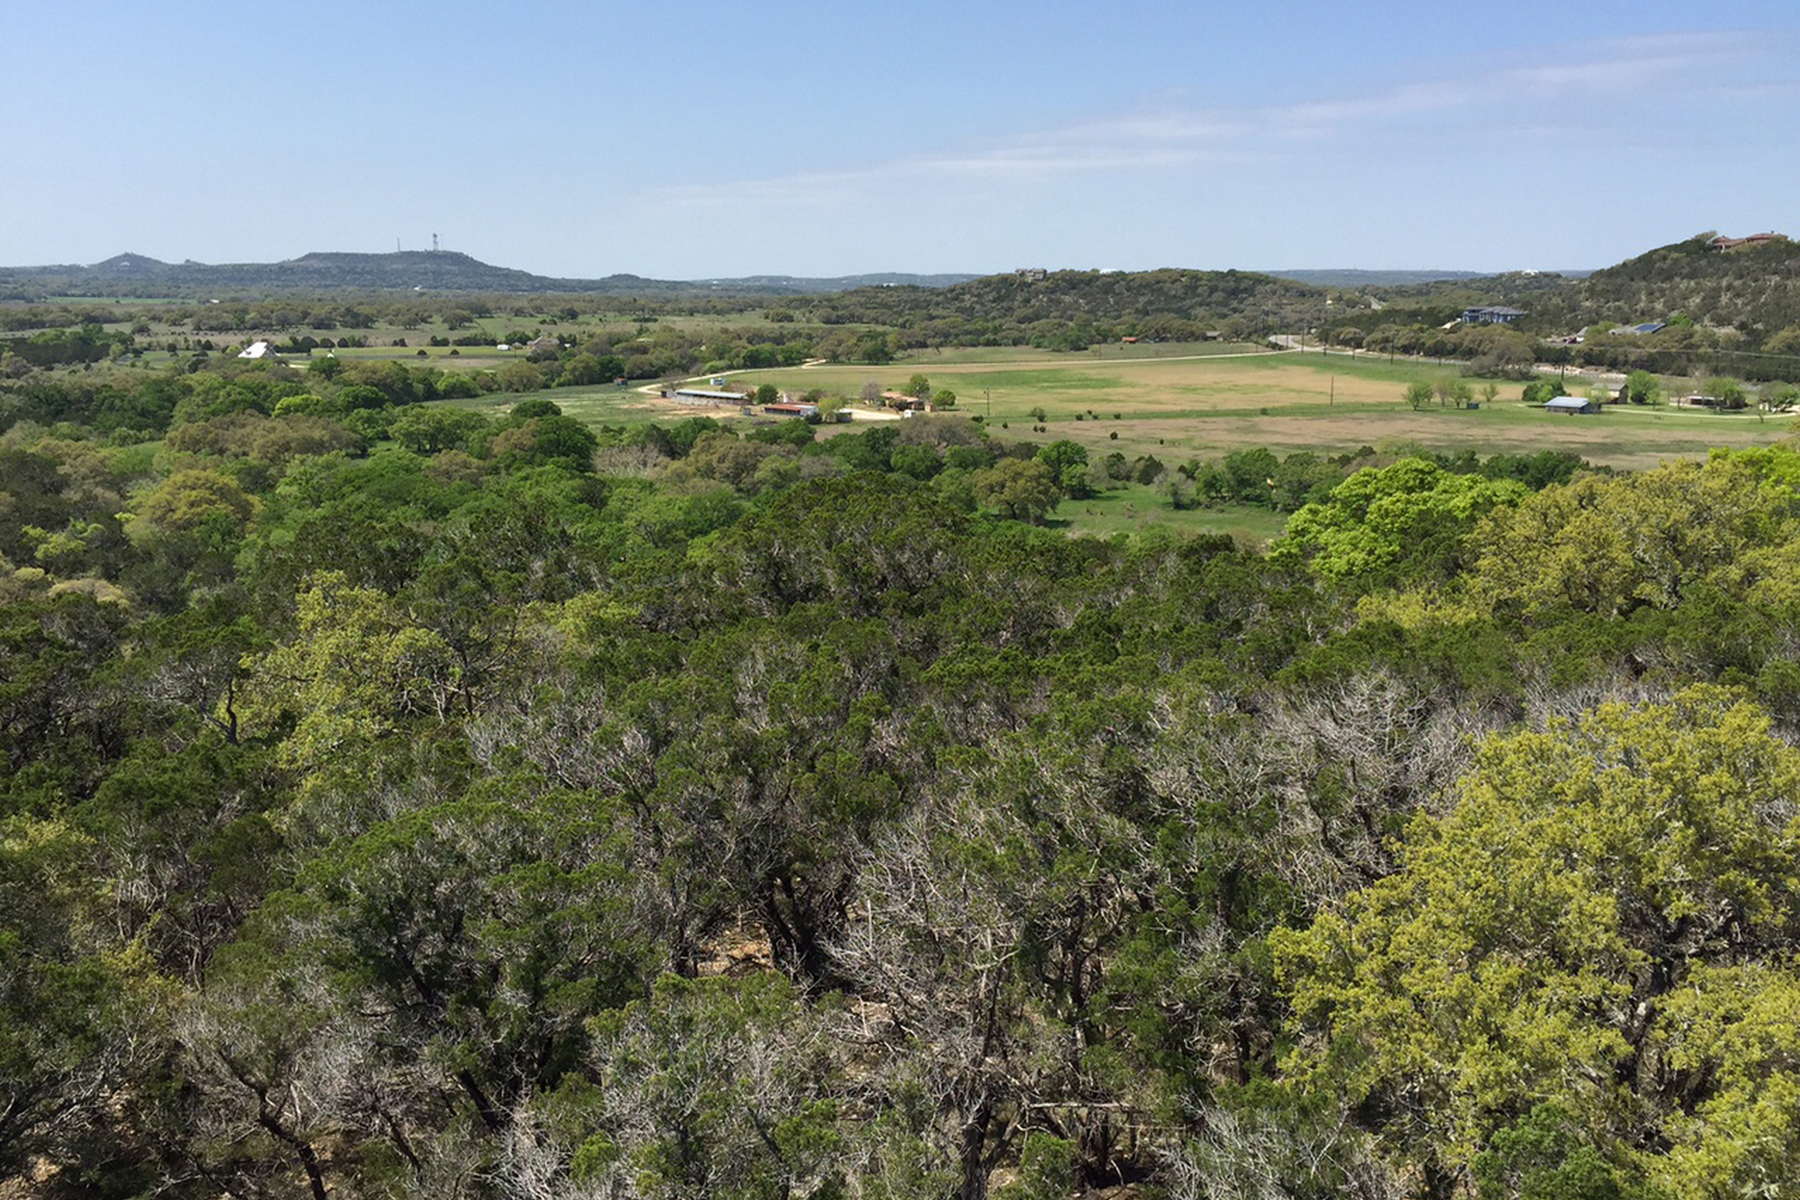 Farm / Ranch / Plantation for Sale at 55+/- Acres in Bexar Co. 6780 FM 1863 Bulverde, Texas 78163 United States